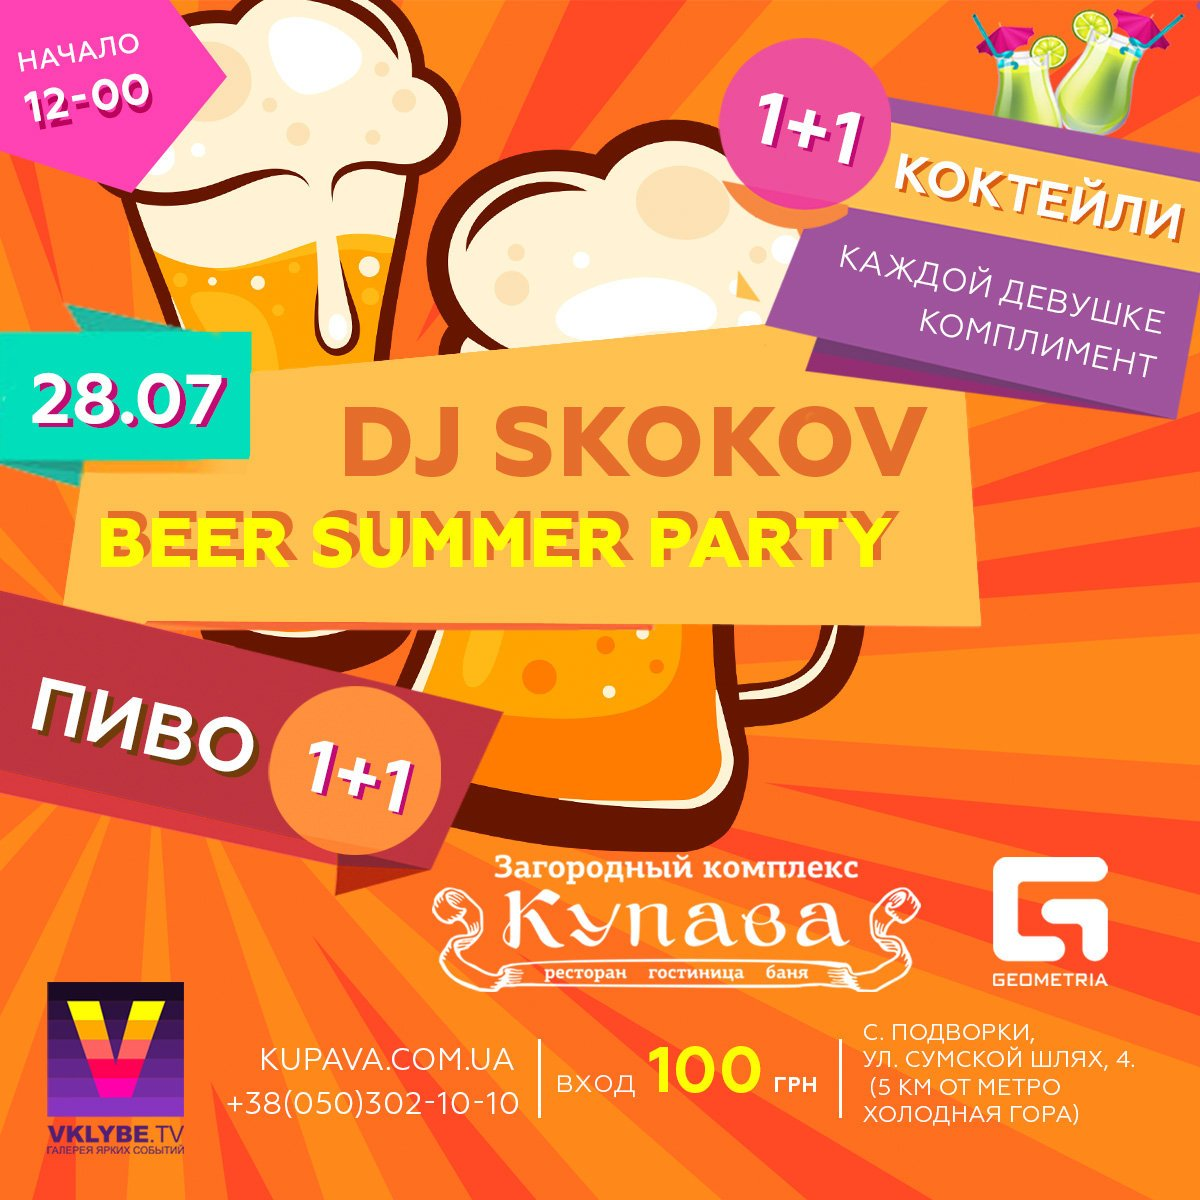 28.07 (суббота) - Beer Summer Party